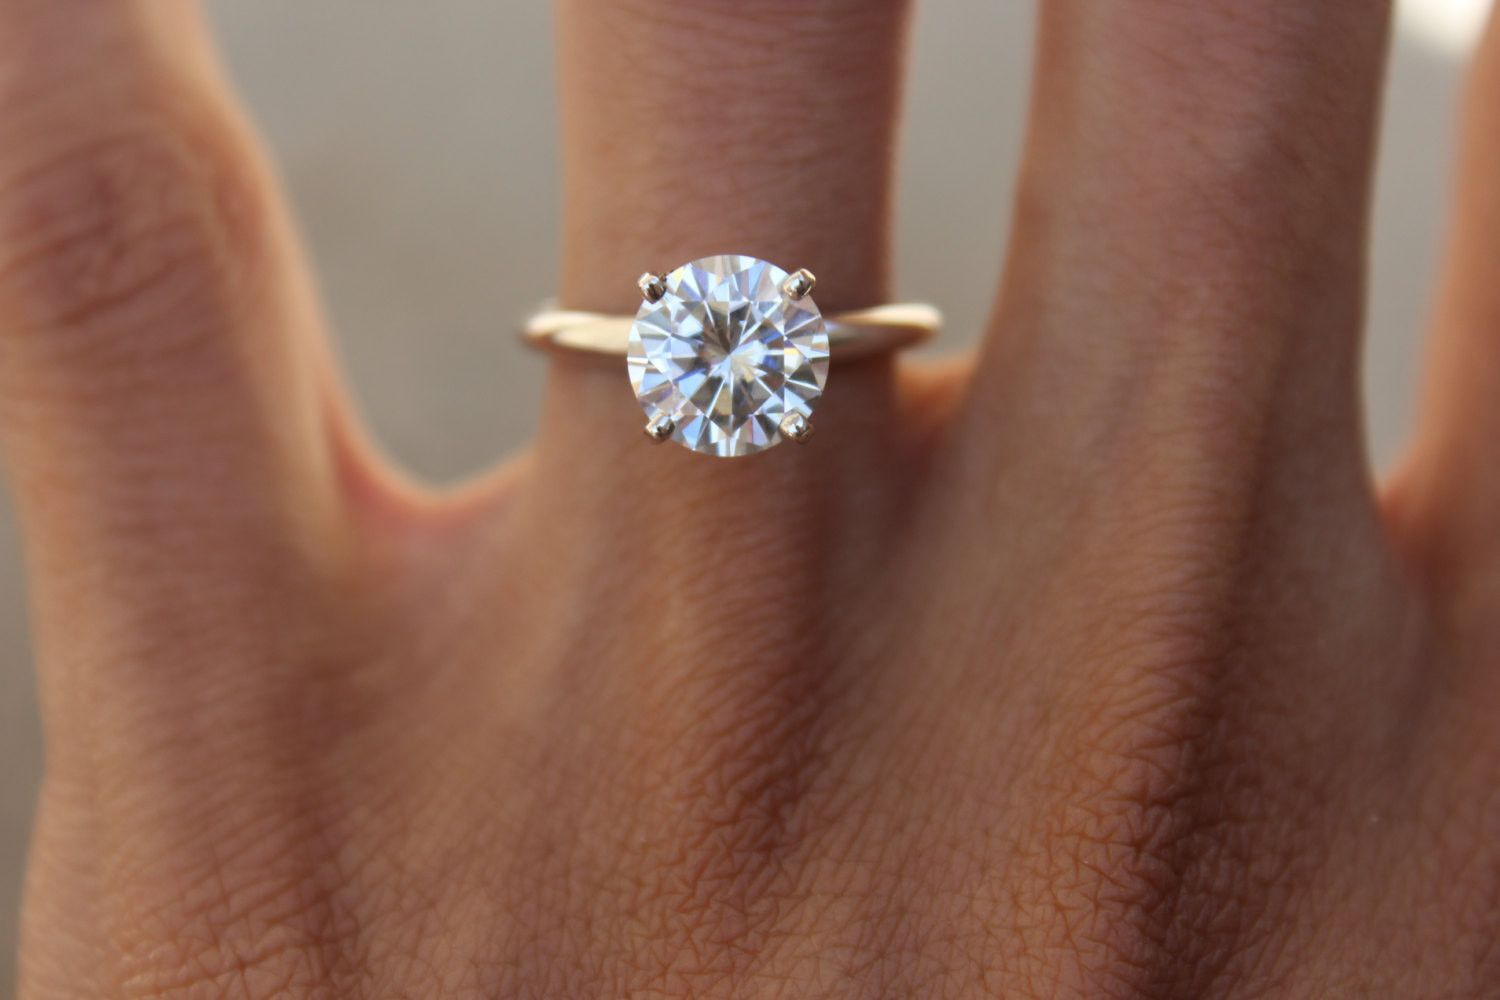 8mm - 2 Carat Forever One Moissanite Solitaire Engagement ...